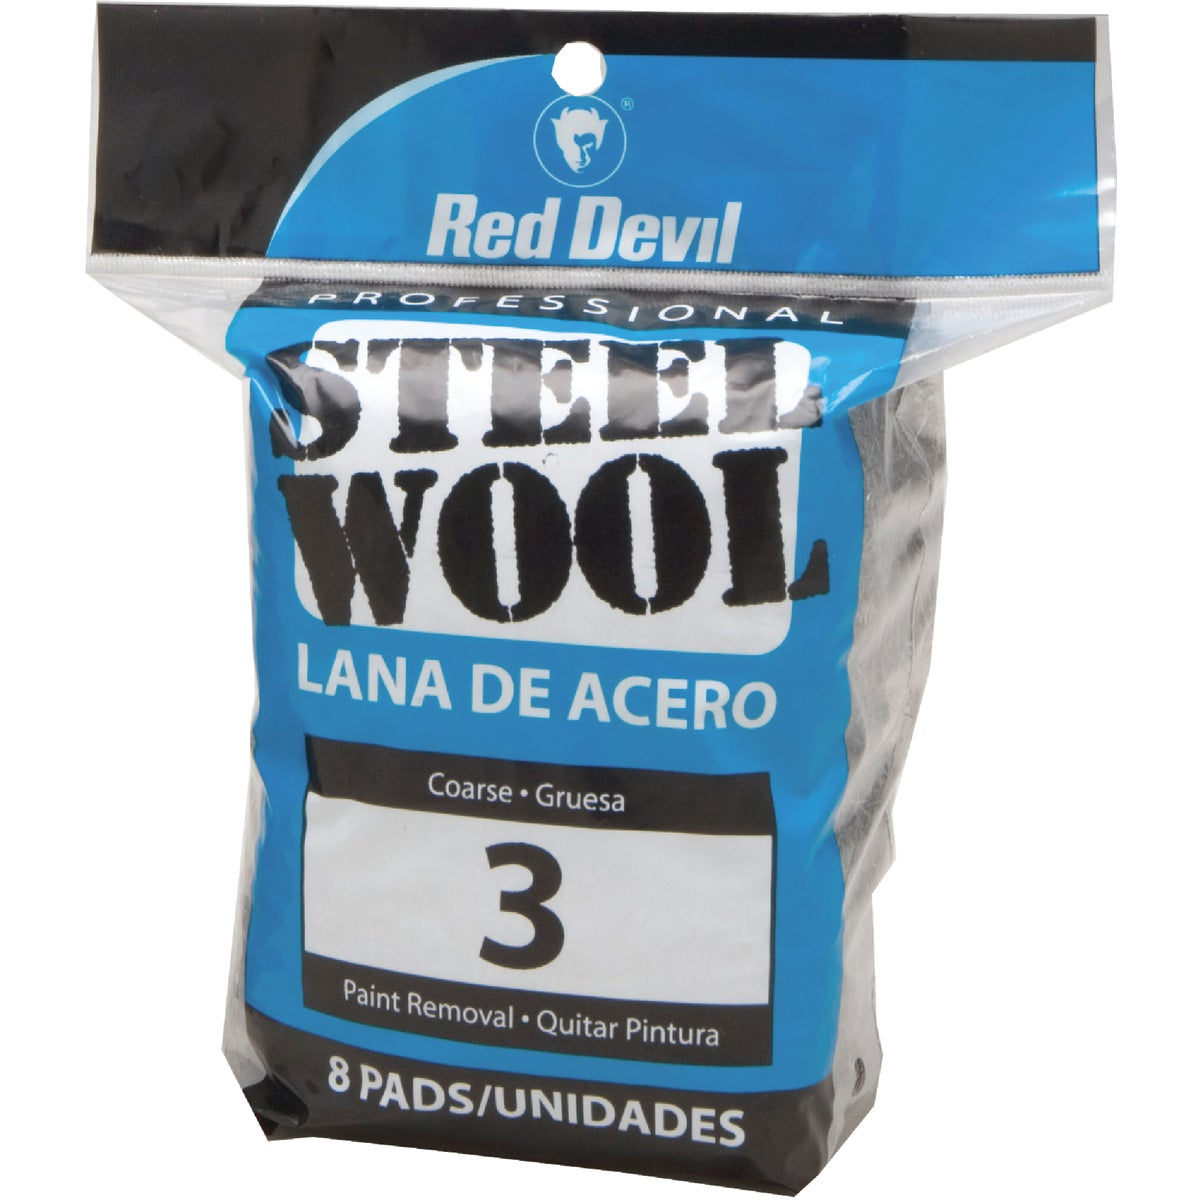 8PK #3 STEEL WOOL - 0326 by Red Devil